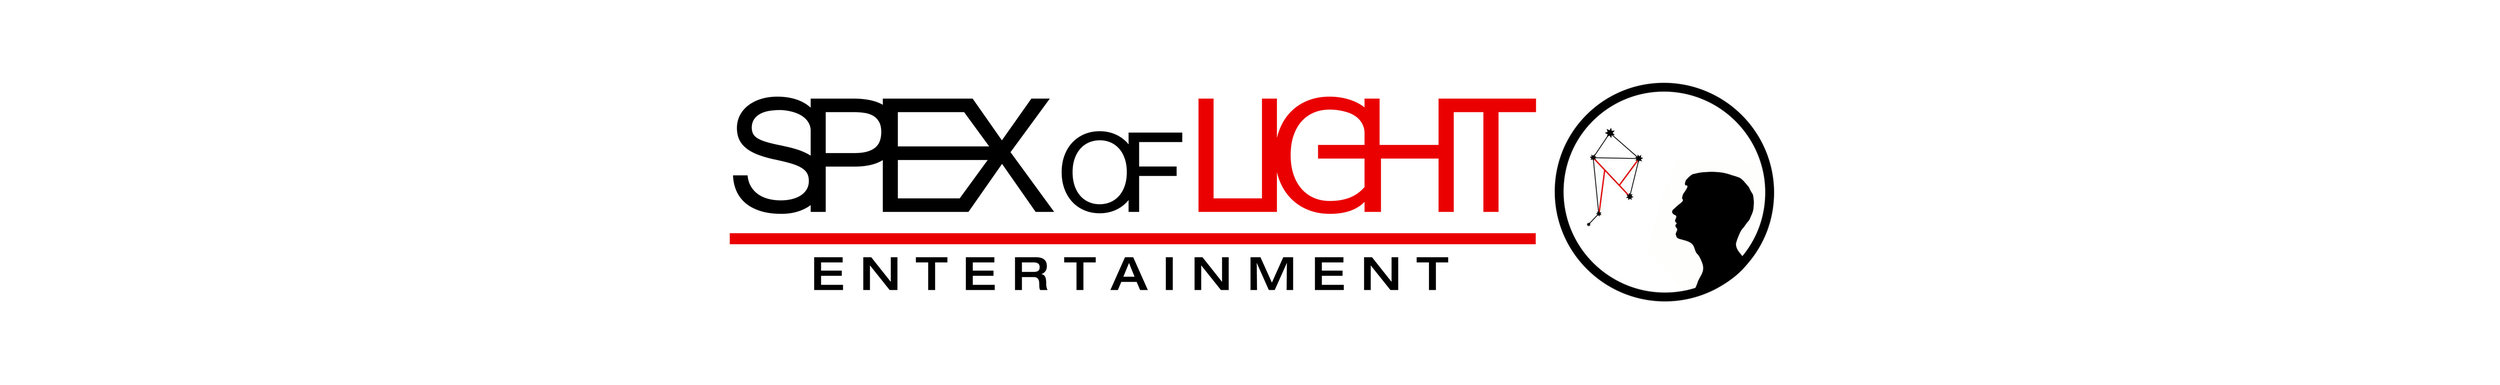 spex of light logo small for website.jpg